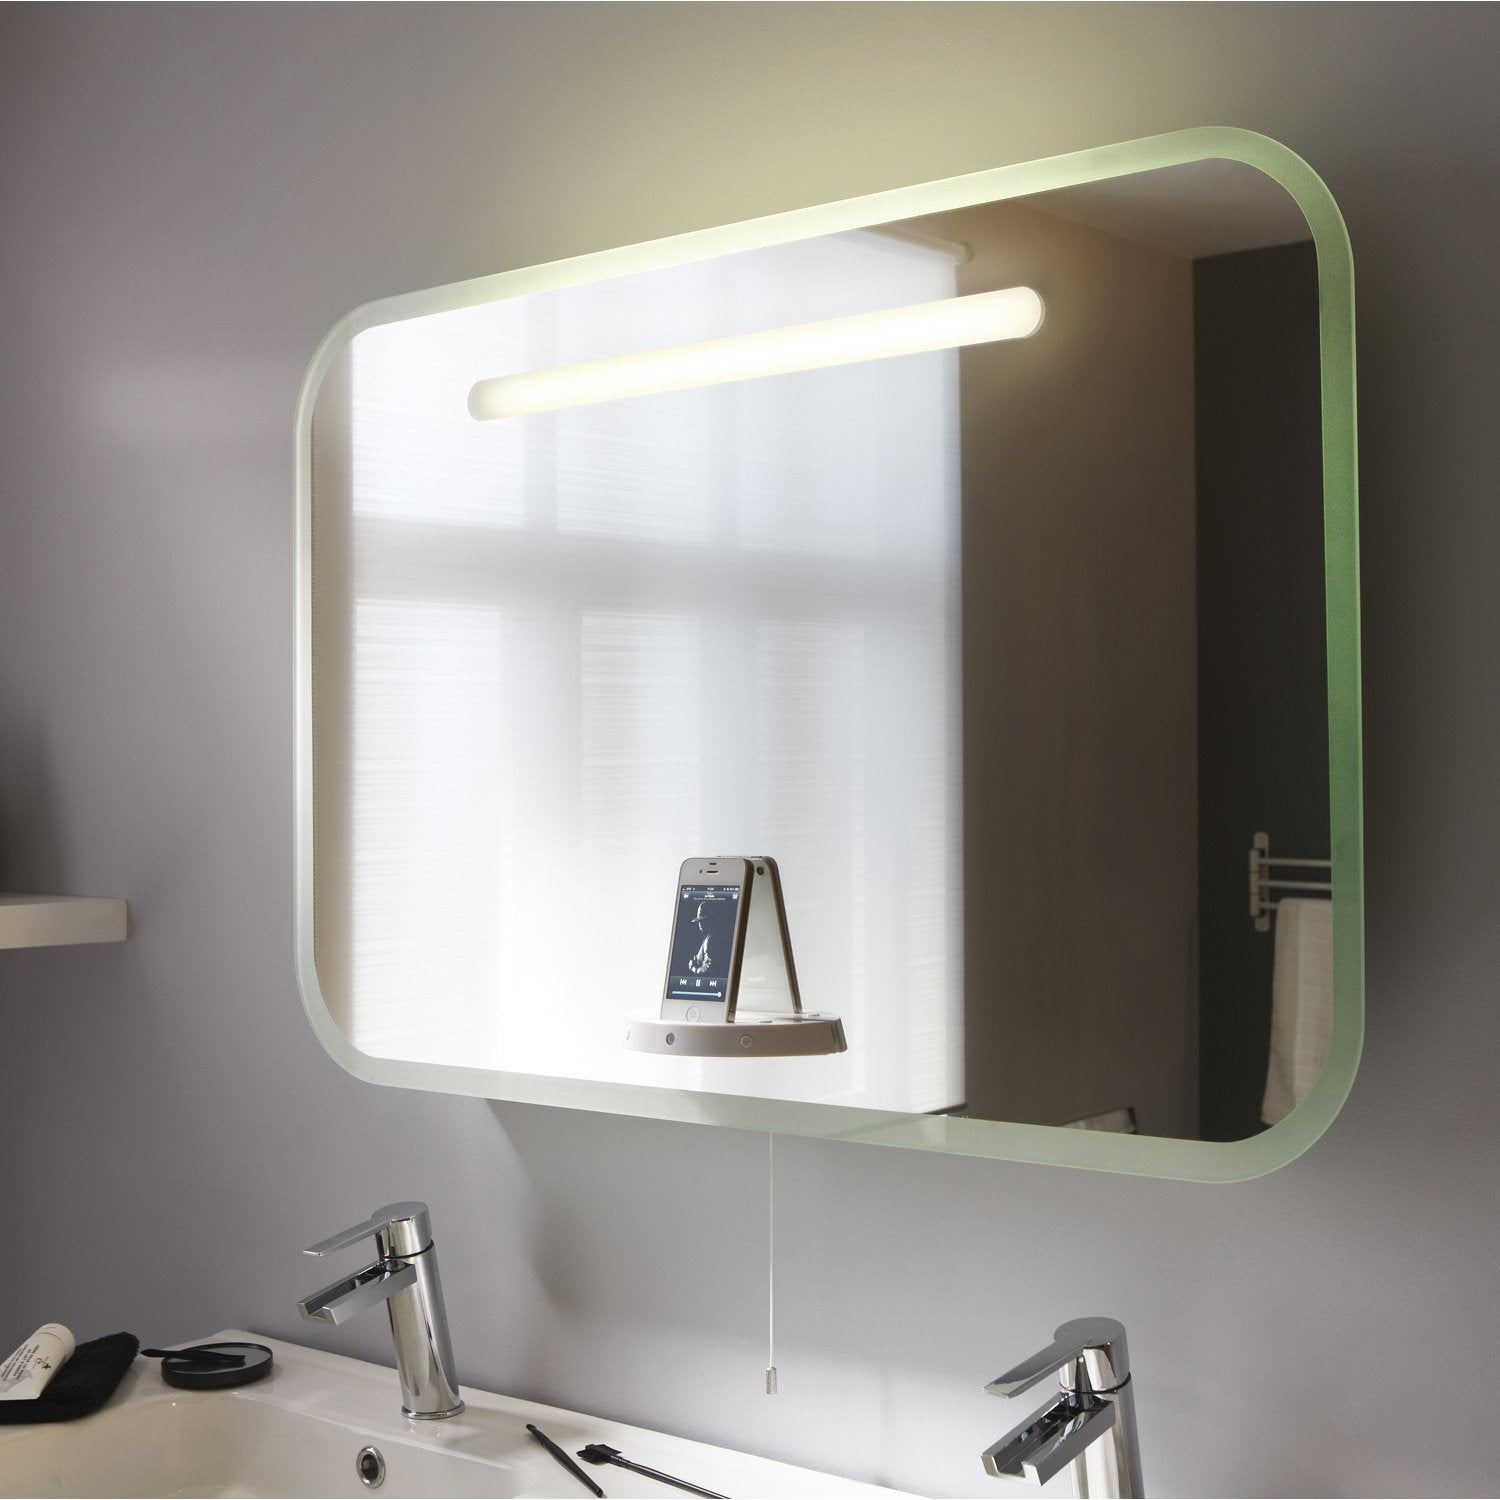 miroir lumineux eclairage int gr x cm music mirror leroy merlin. Black Bedroom Furniture Sets. Home Design Ideas